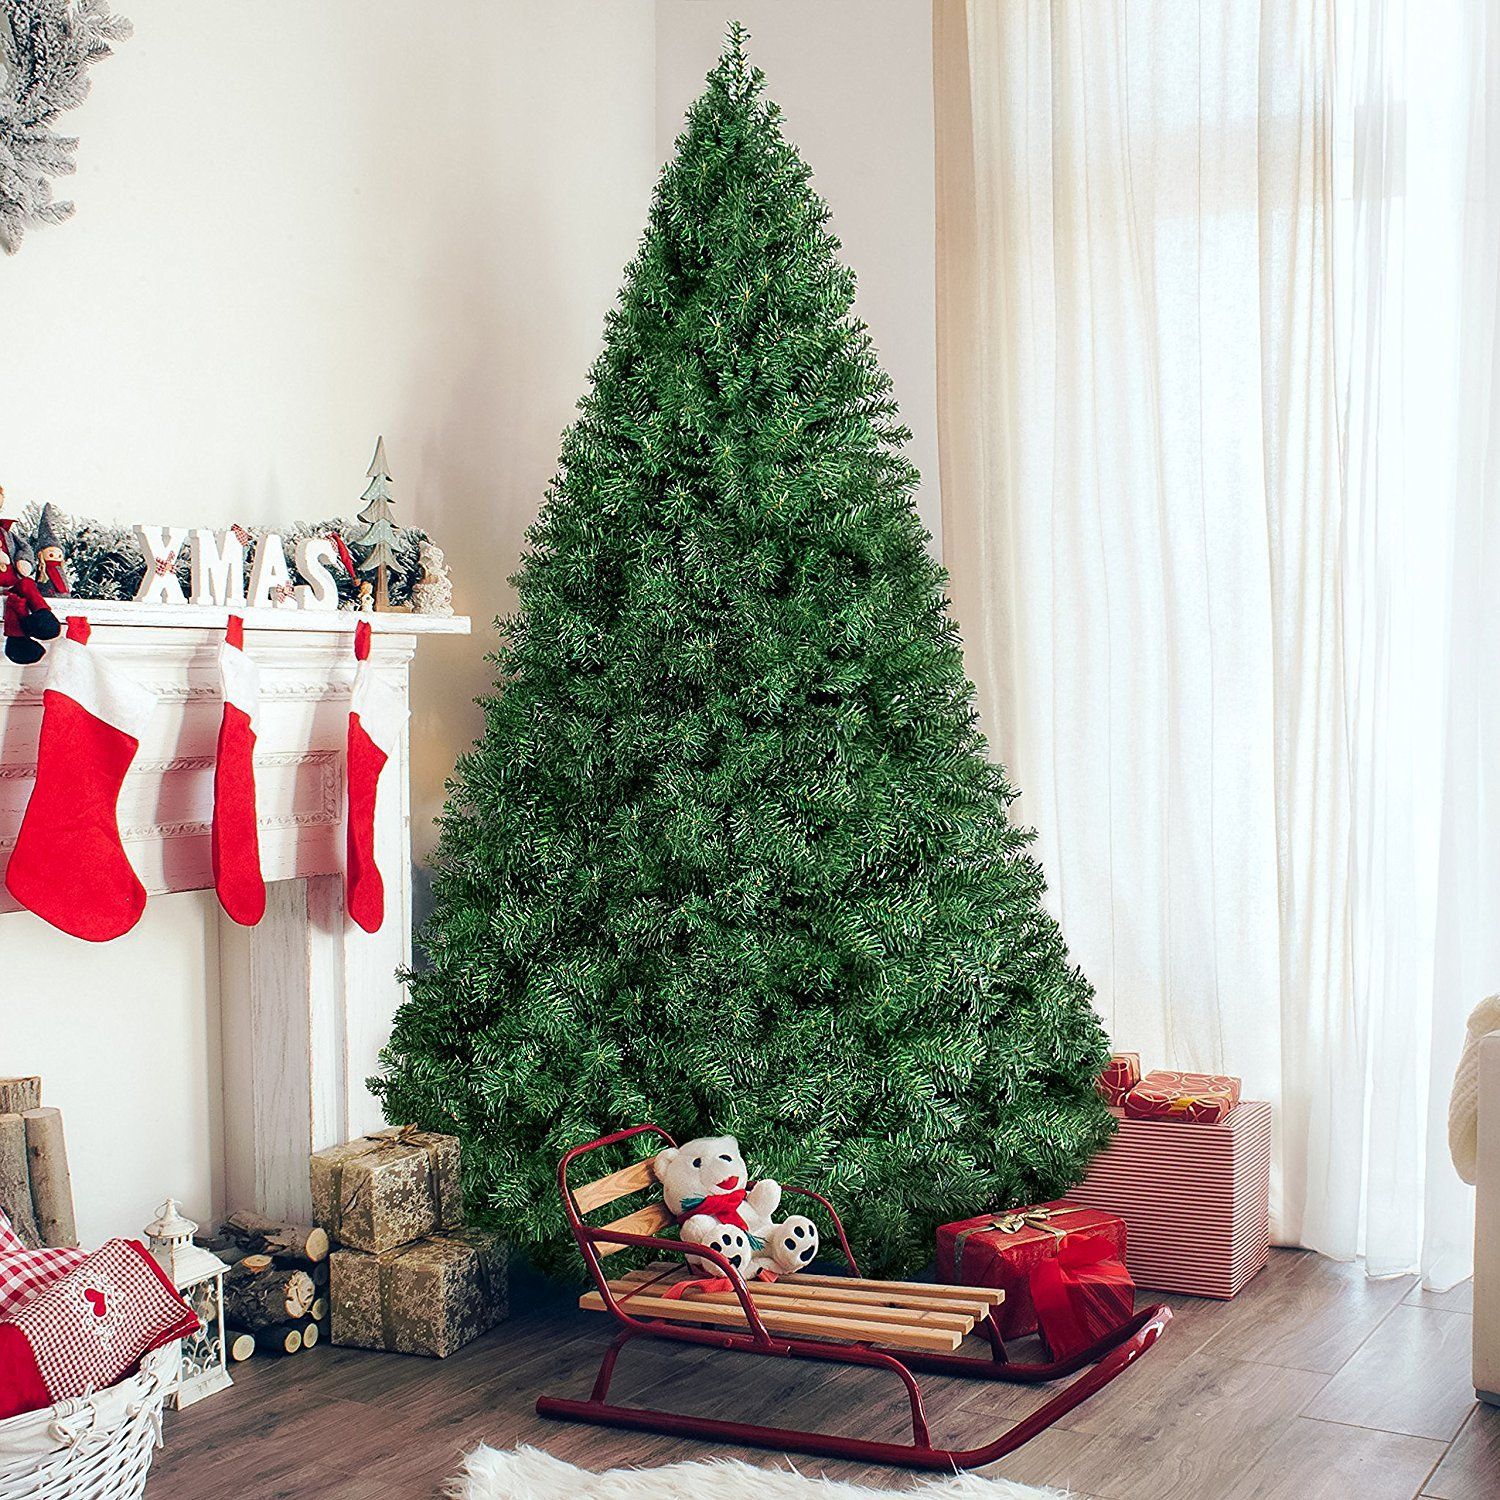 15 Best Artificial Christmas Trees - Fake Holiday Trees